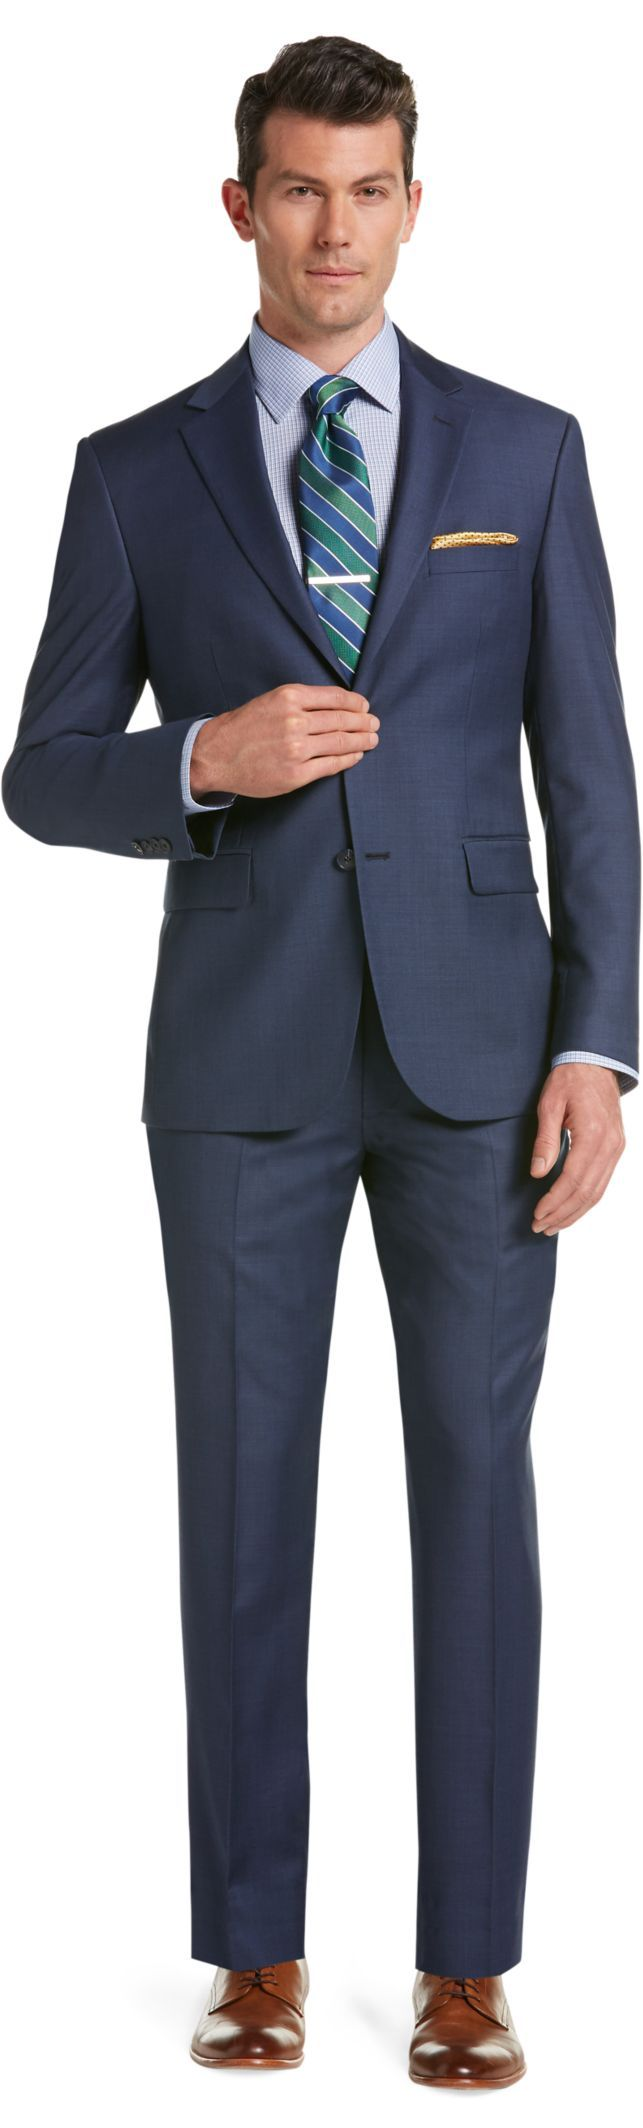 Check this out! Traveler Collection Tailored Fit Sharkskin Suit from JoS. A. Bank Clothiers. #JosABank